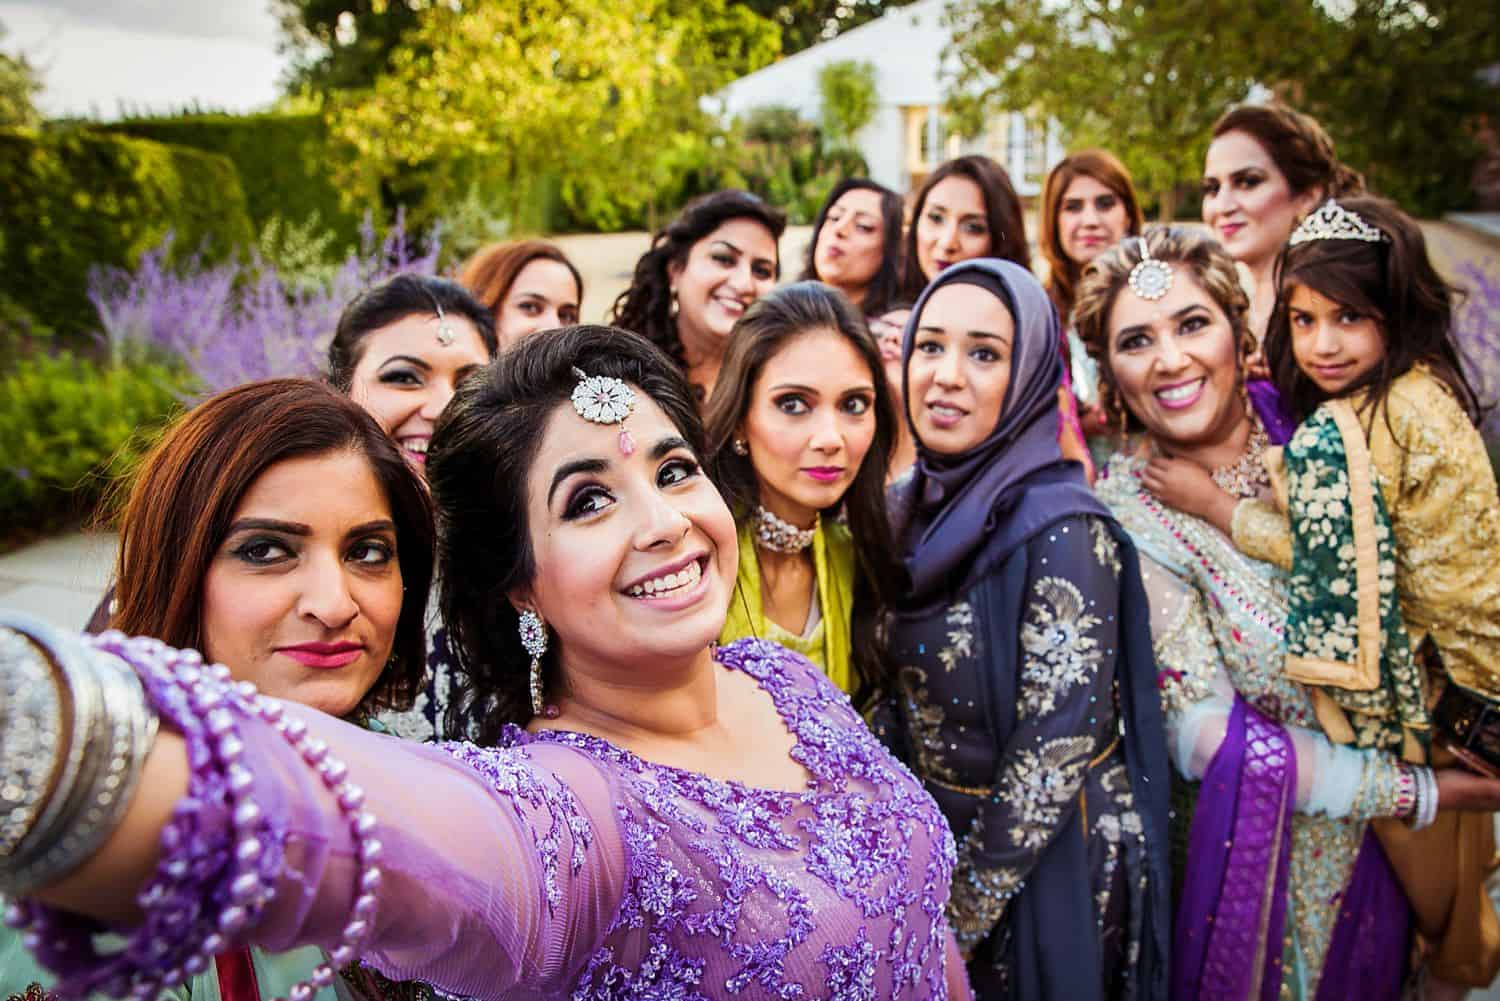 An Indian bride takes a selfie with her bridesmaids